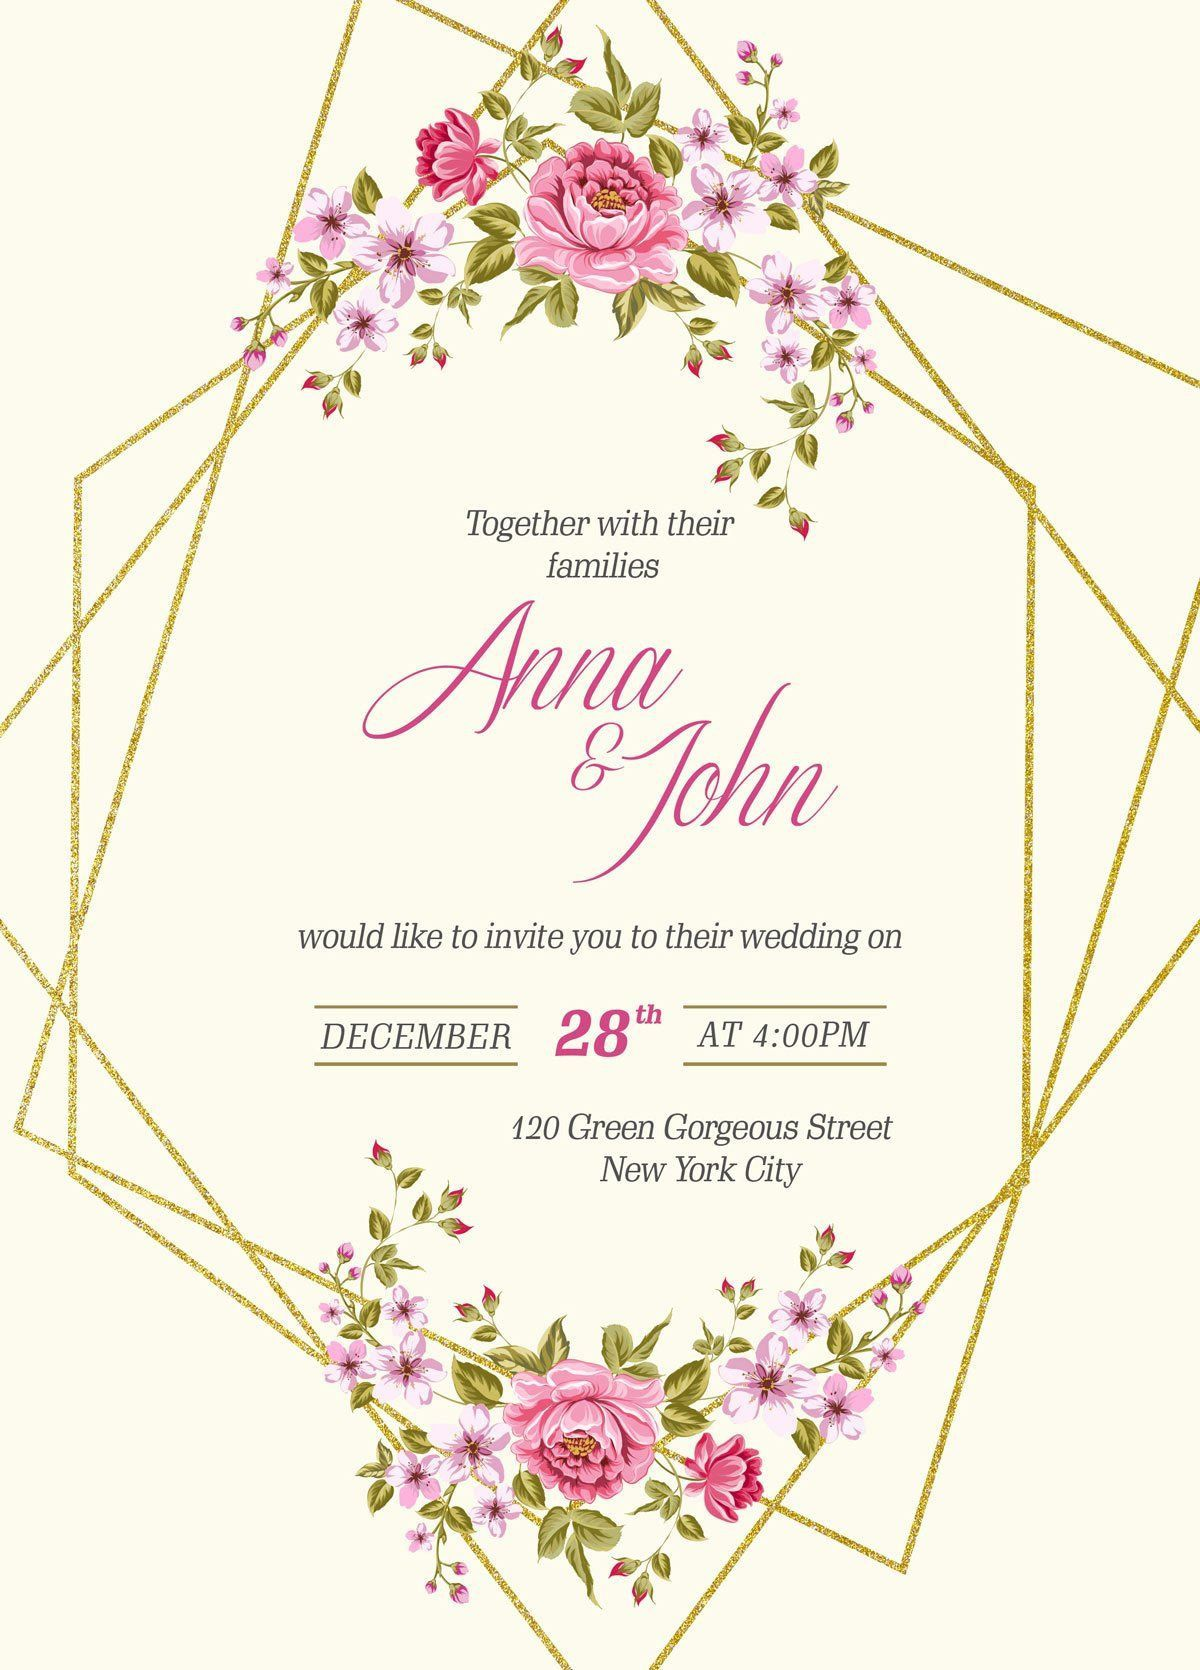 005 Wondrou Download Free Wedding Invitation Card Template Concept  Format Indian-traditional-wedding-invitation-card-psd-template-free-downloadFull